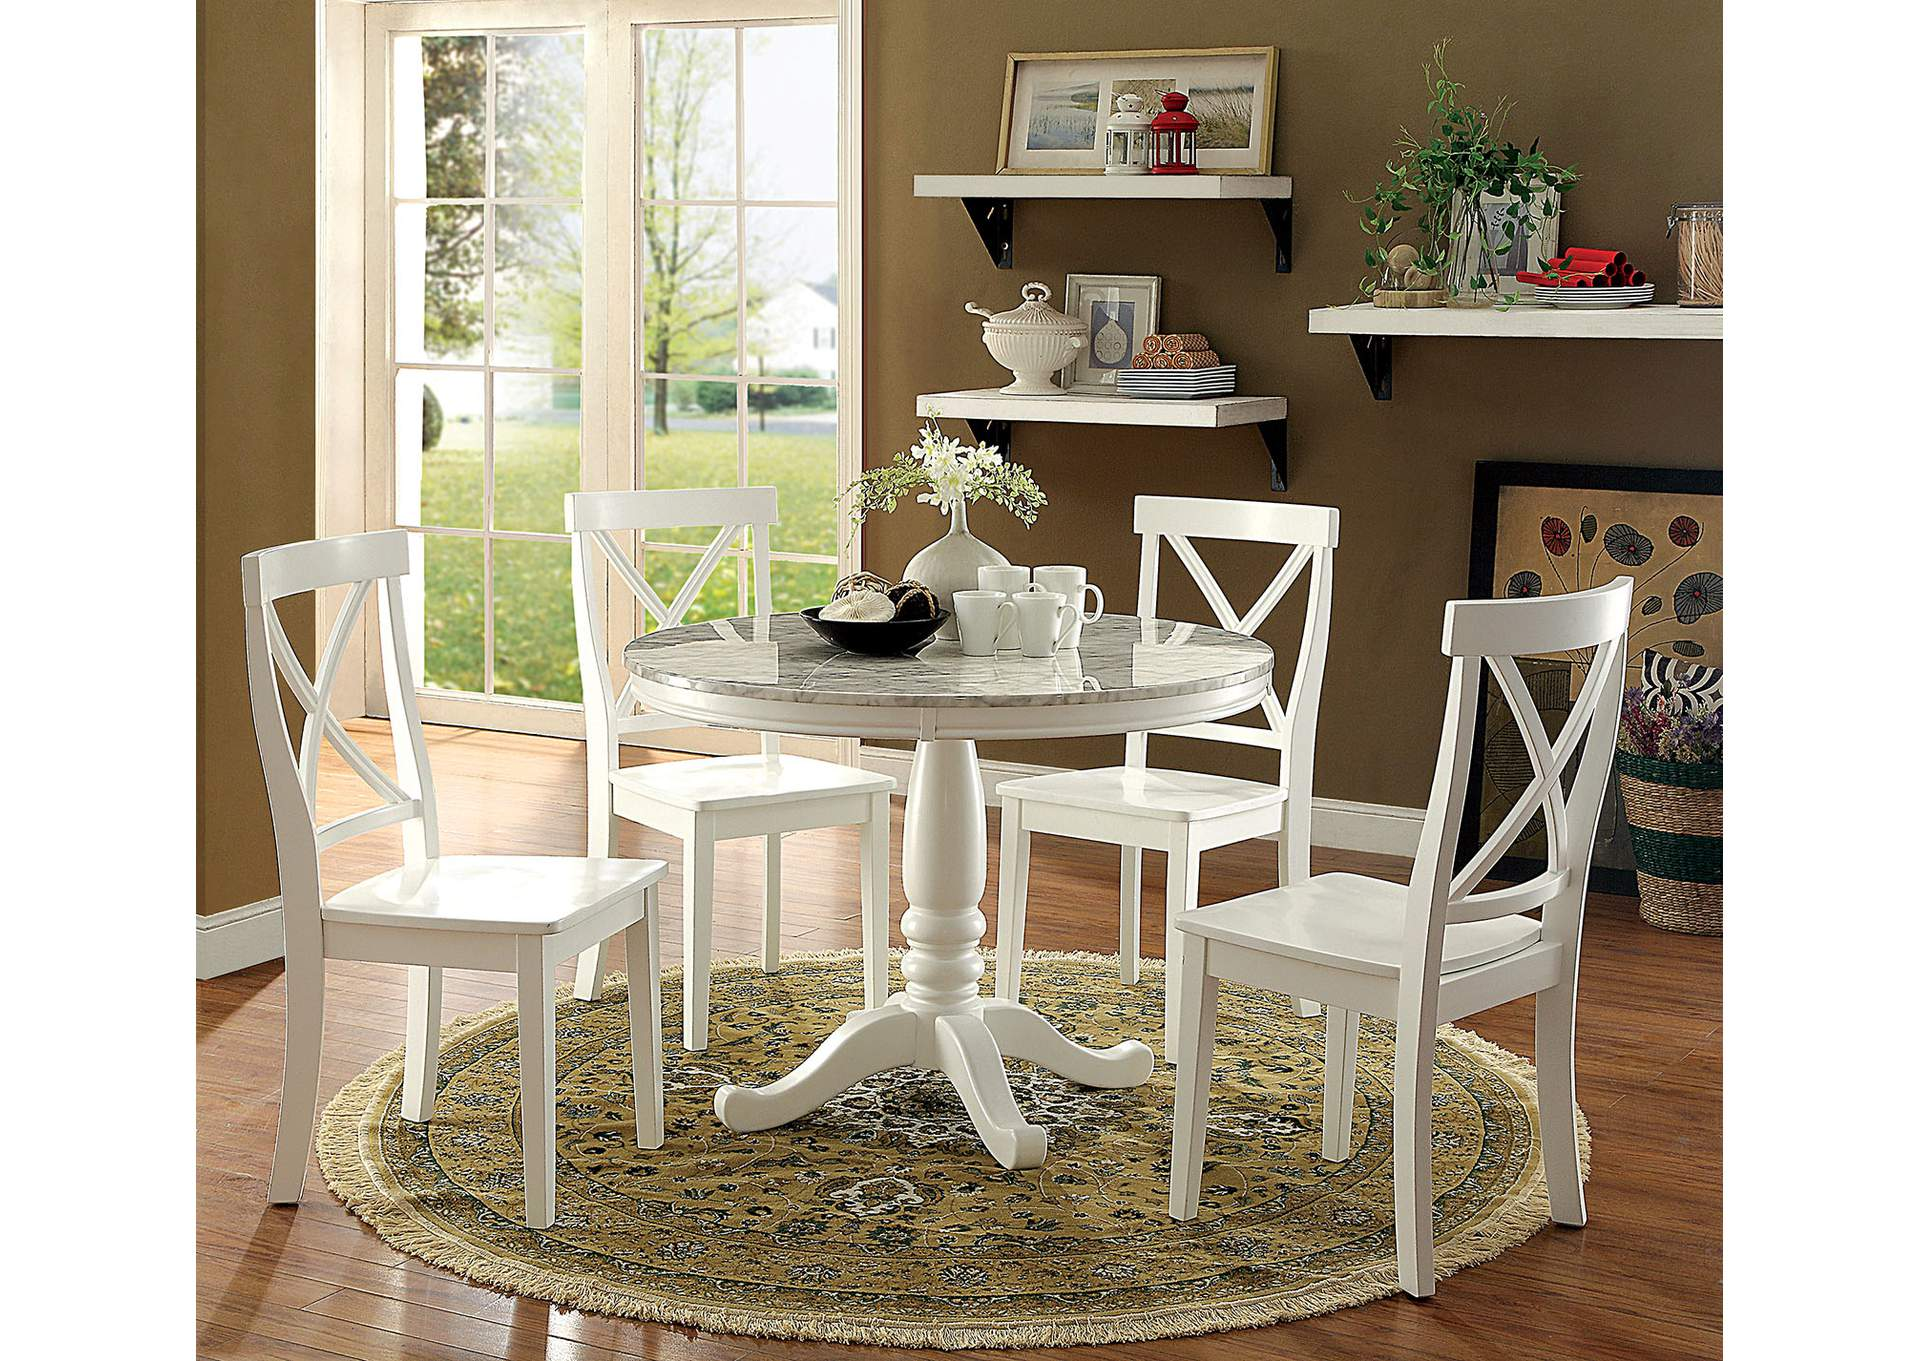 Penelope White Round Faux Marble Table w/4 Side Chairs,Furniture of America